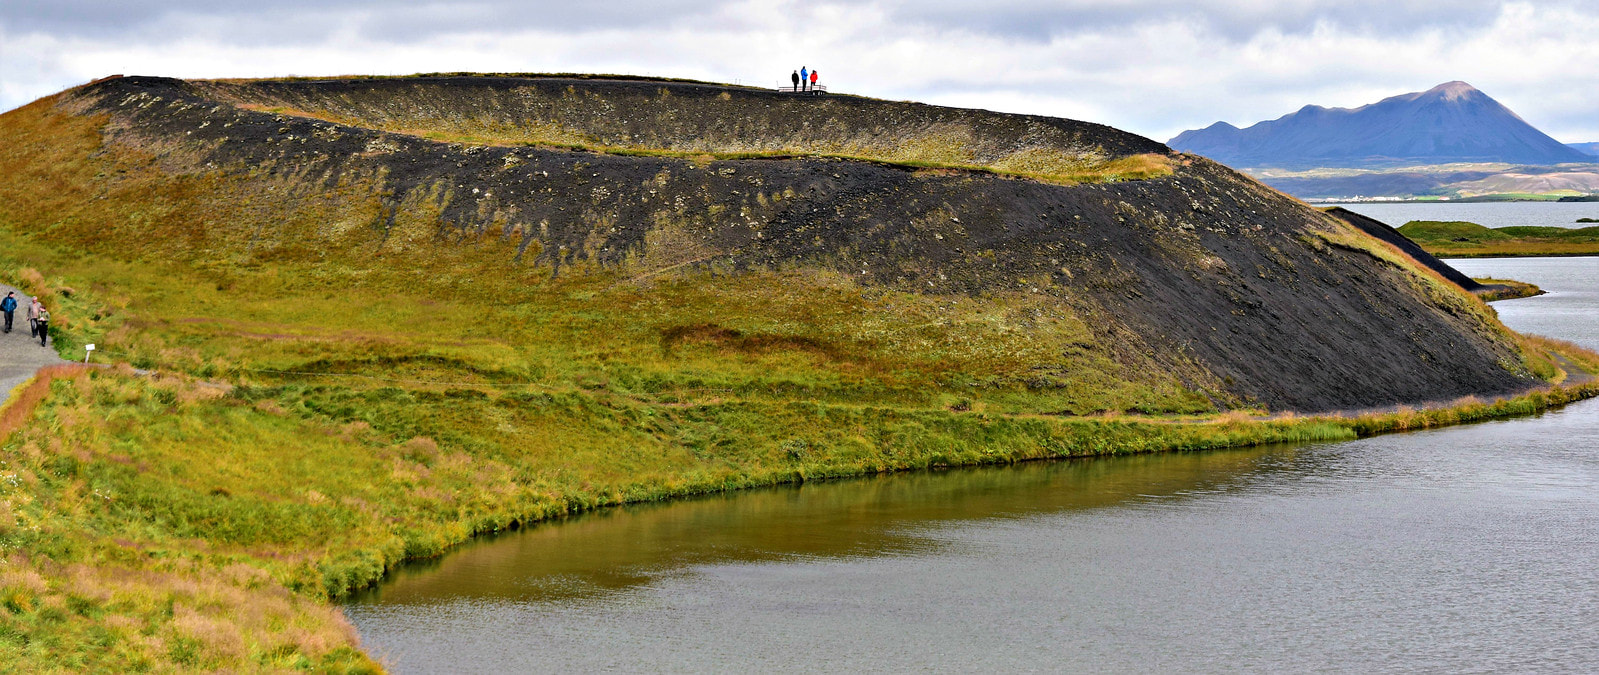 Skútustaðagígar pseudocraters (Pseudo Craters) - North Iceland